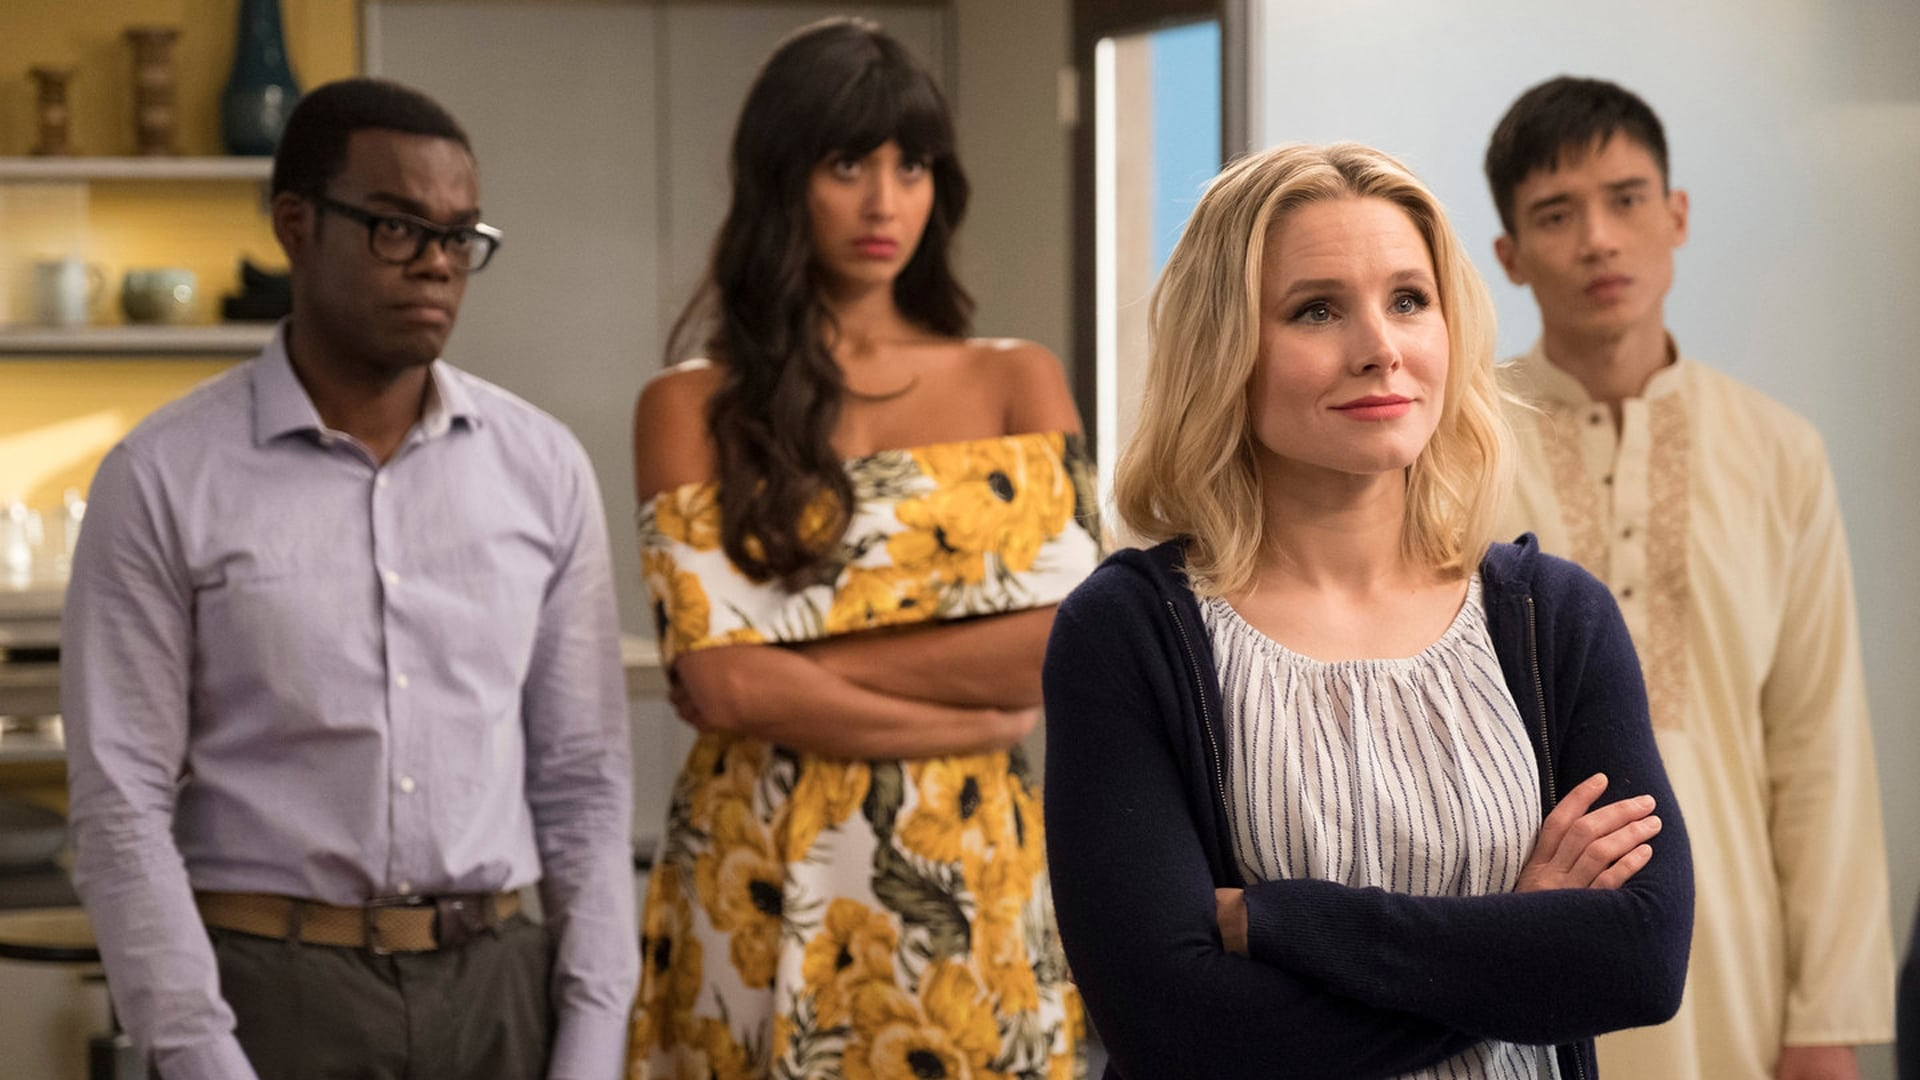 The Good Place: Season 2 x Episode 3 - free to watch online